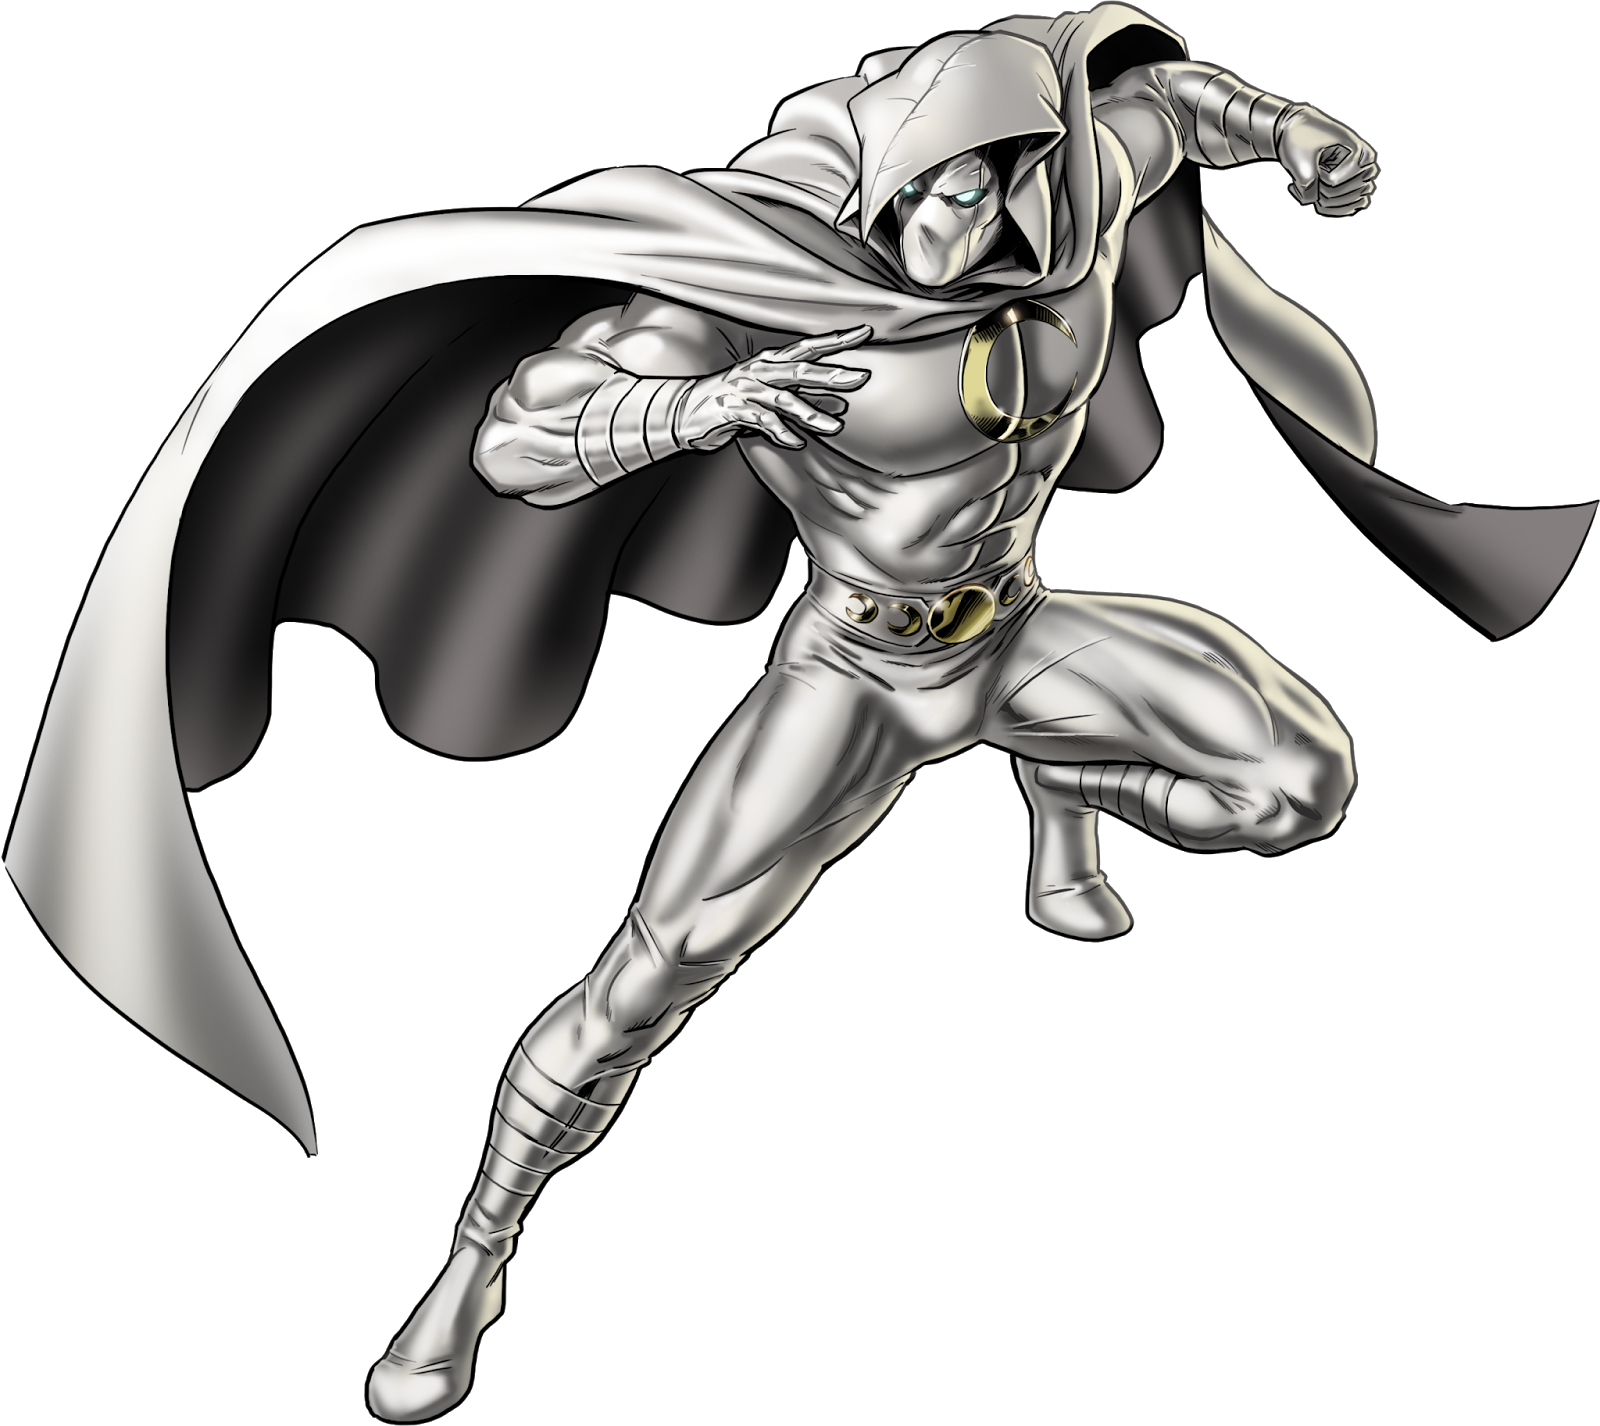 moon knight - photo #14